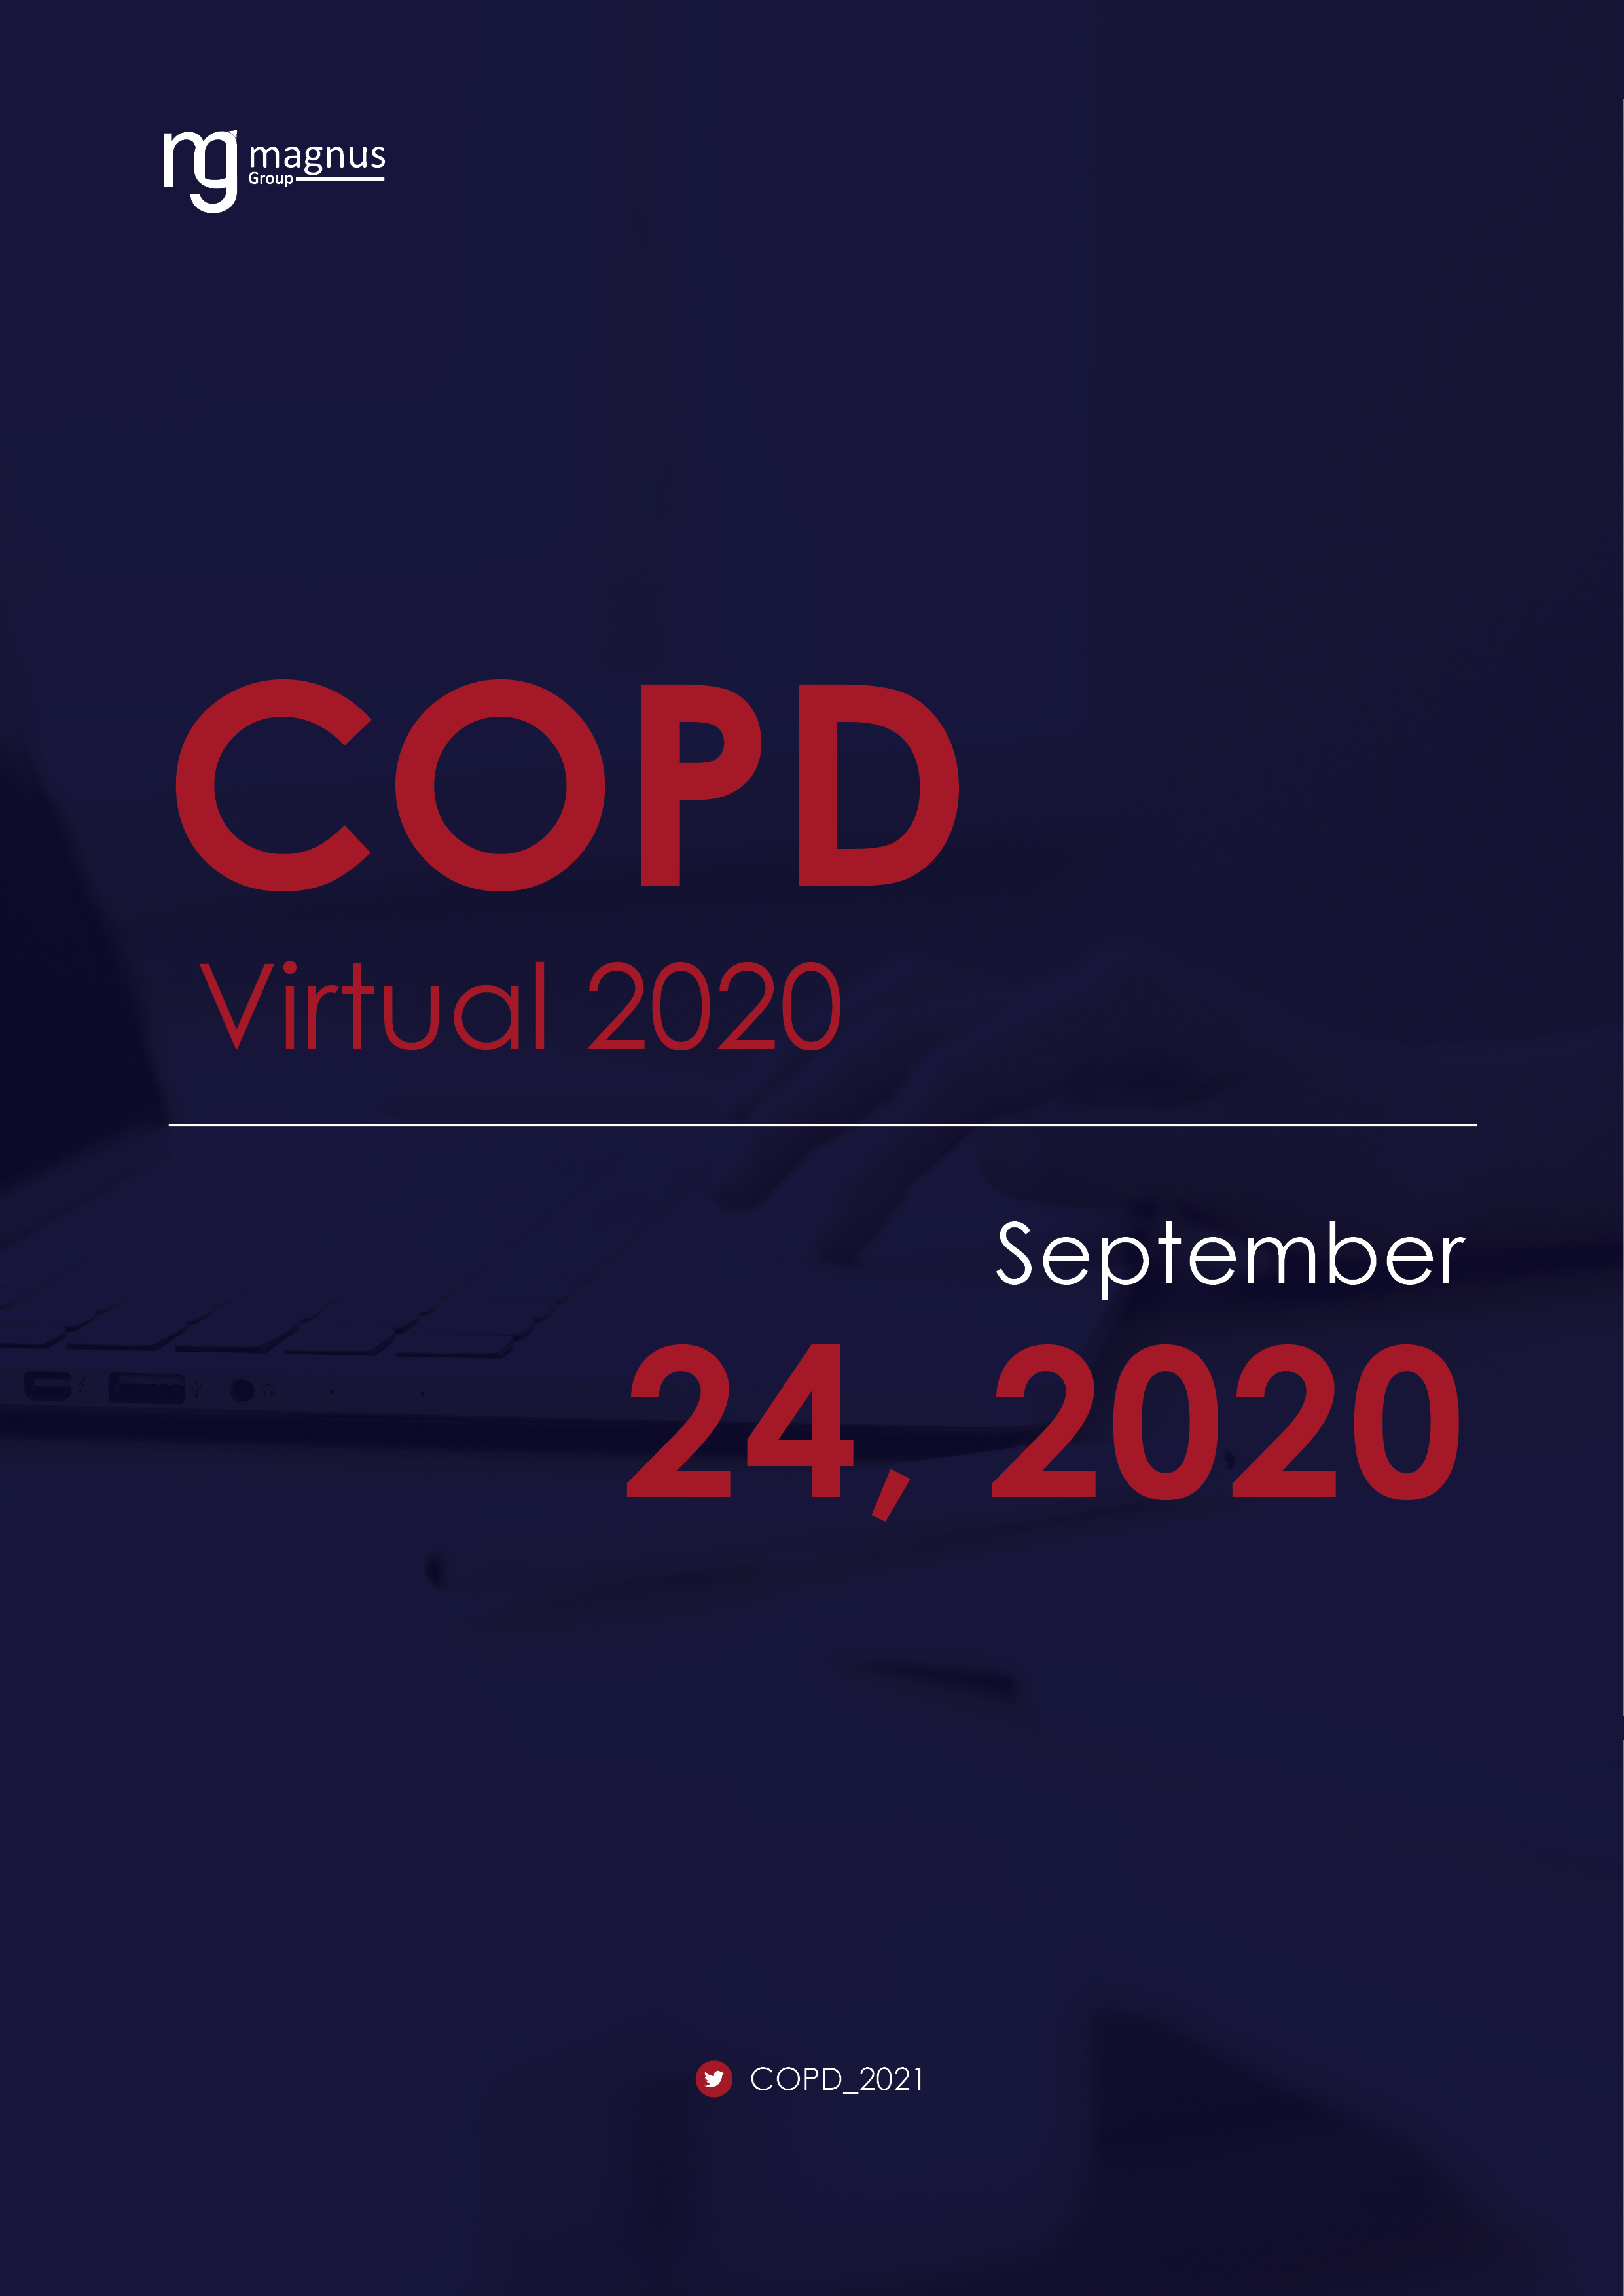 International webinar on COPD and Asthma | Online Event Book